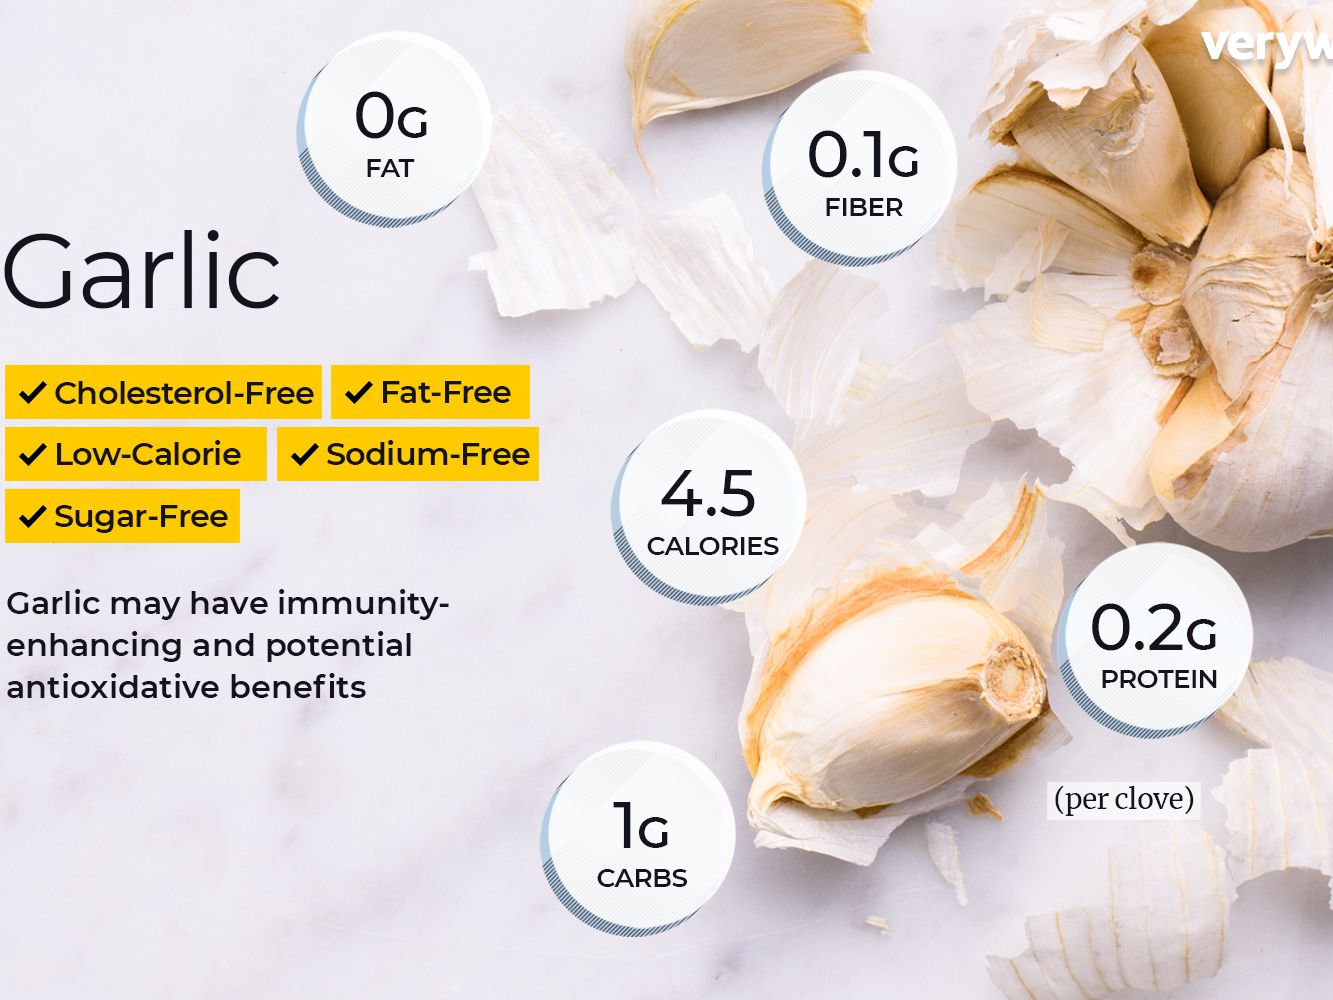 Garlic Nutrition Facts: Calories, Carbs, and Health Benefits